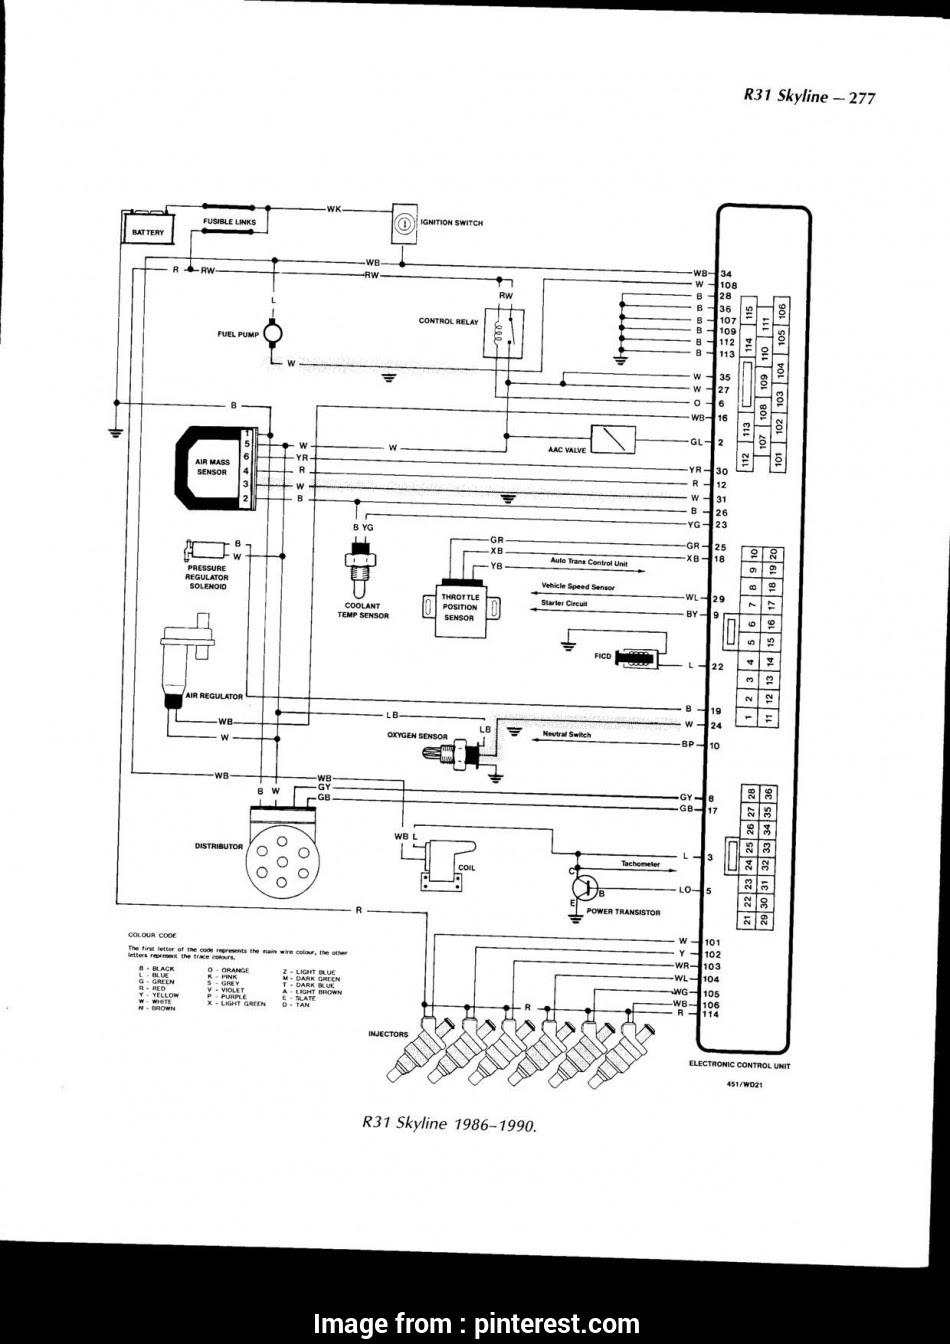 3 Way Switch Wiring Diagram Electrical Pinterest